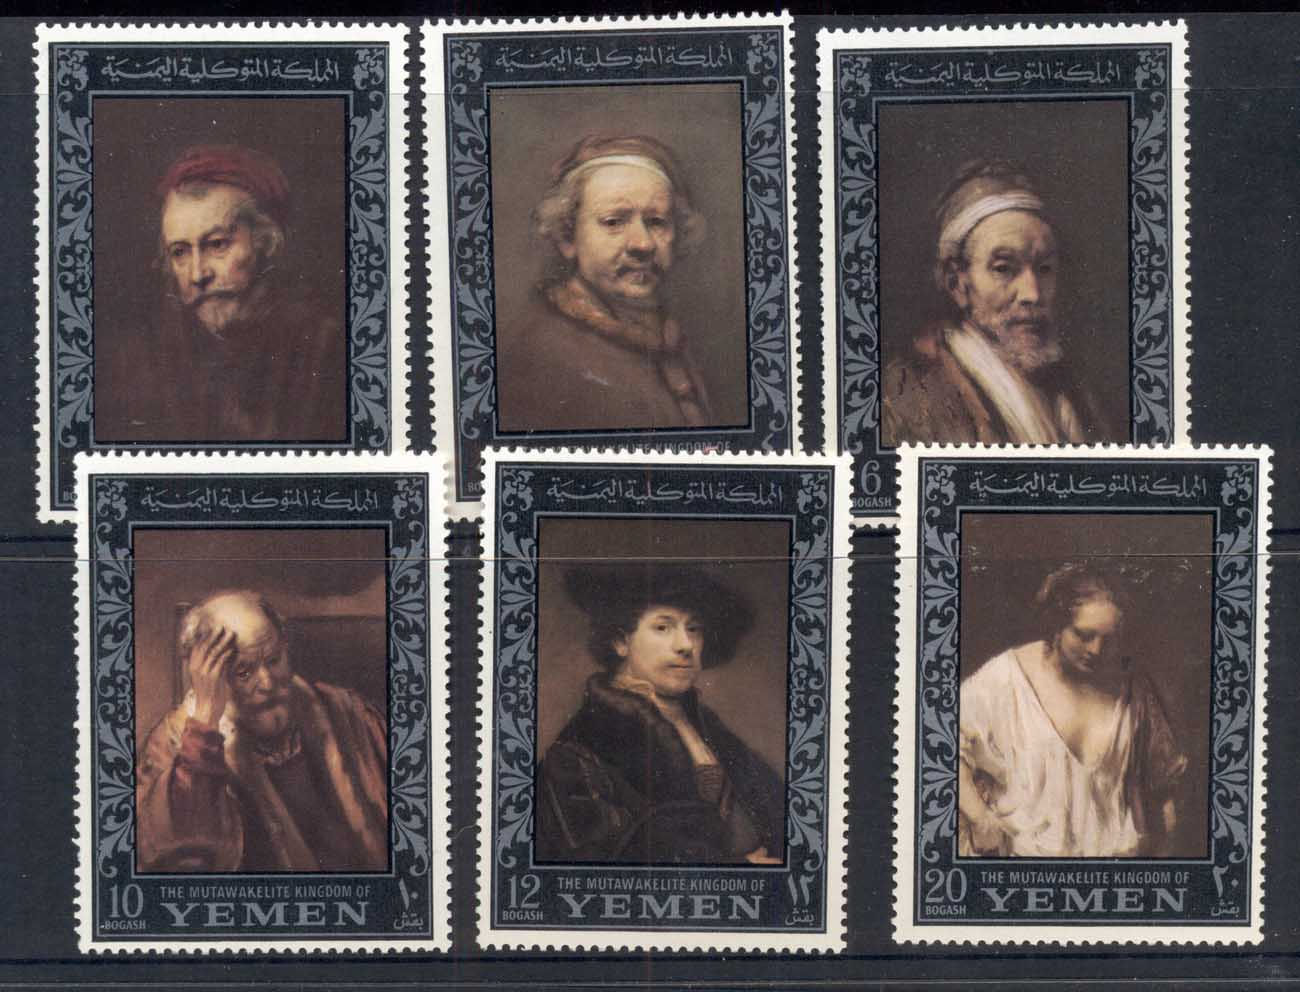 Yemen Kingdom 1967 Mi#278-283 Rembrandt Paintings, Amphilex Stamp Ex, silver borders MUH